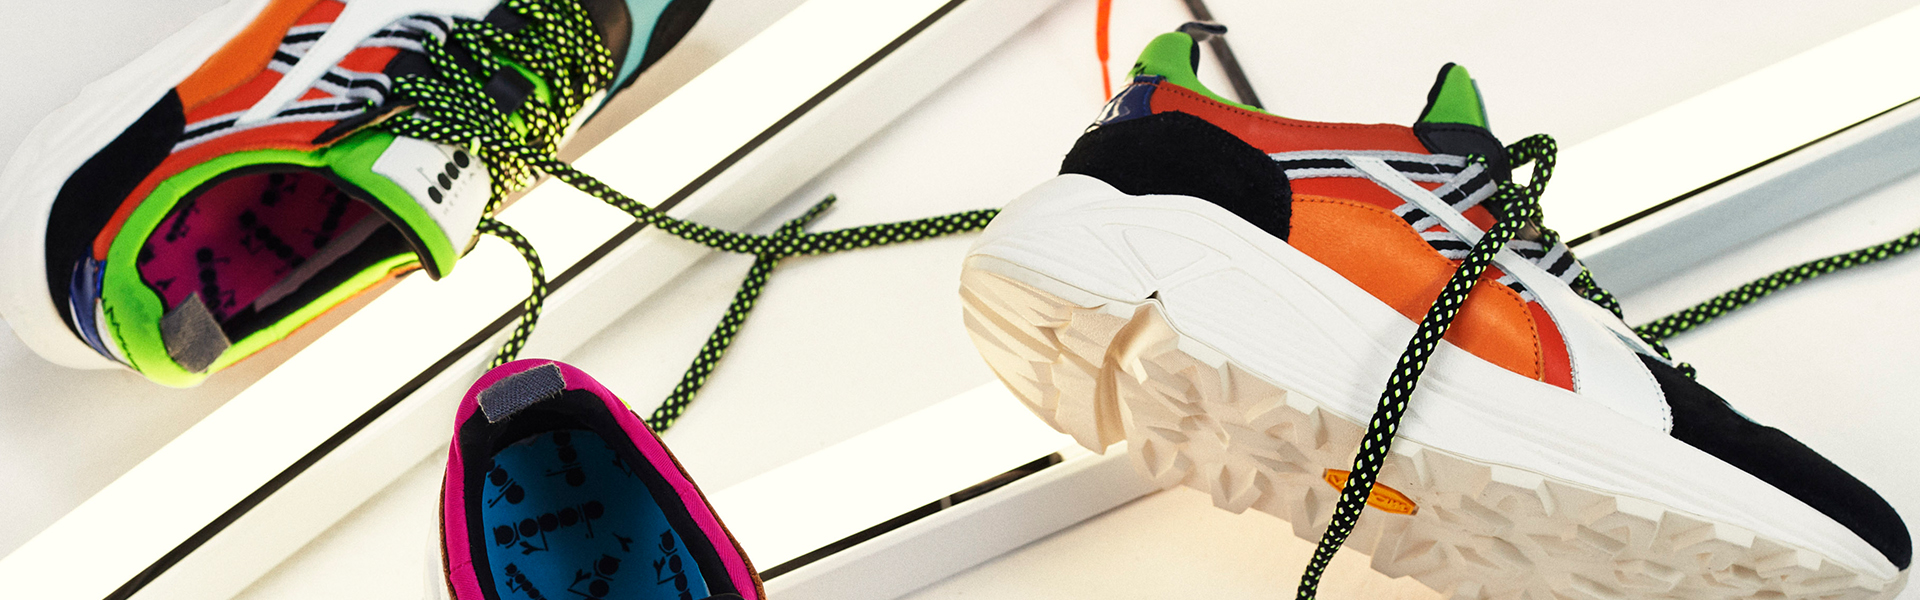 Diadora: Shoes, Clothing and Accessories US